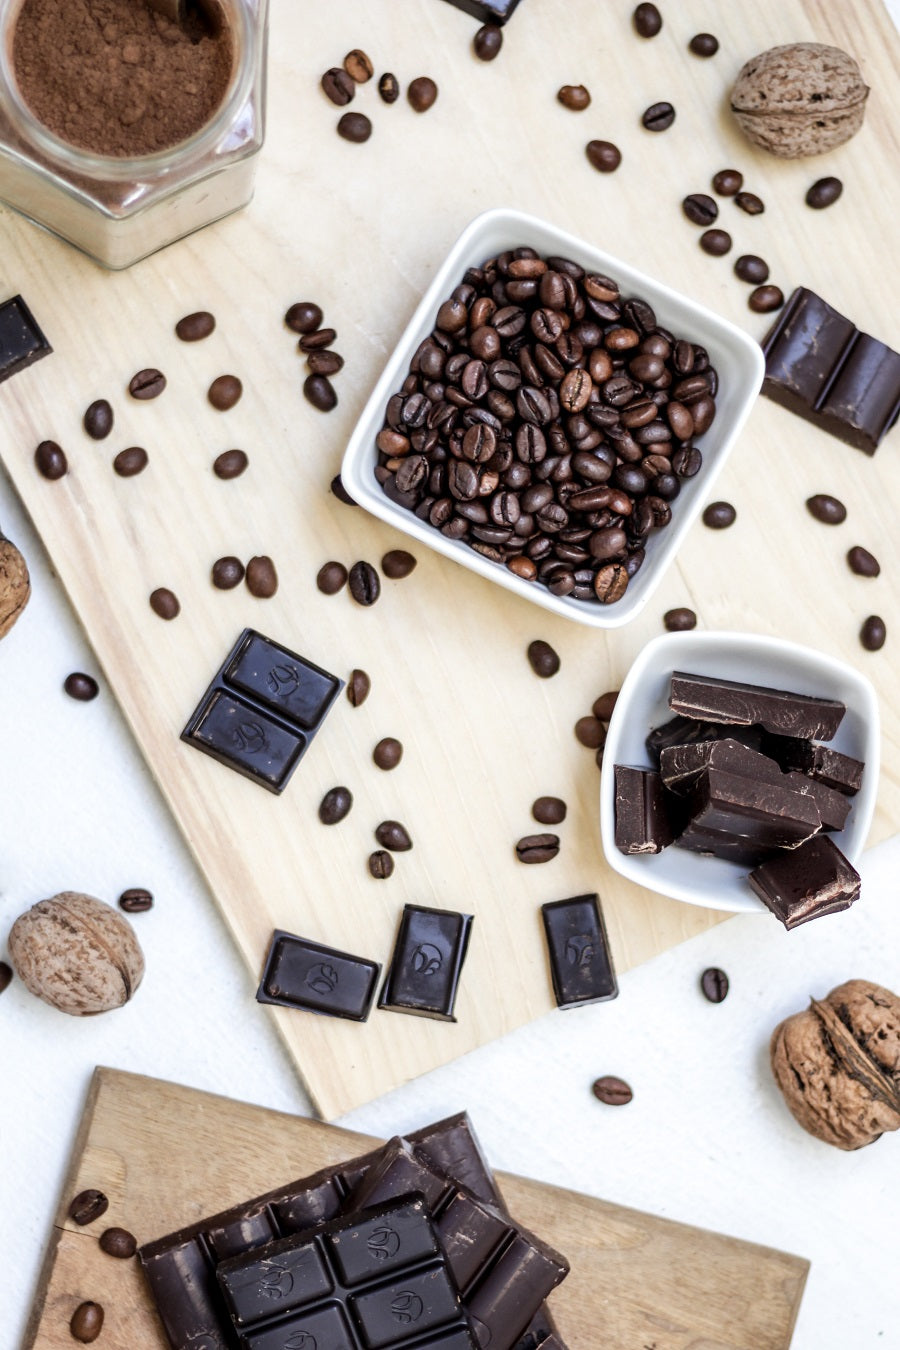 coffee beans and chocolate spread over a table